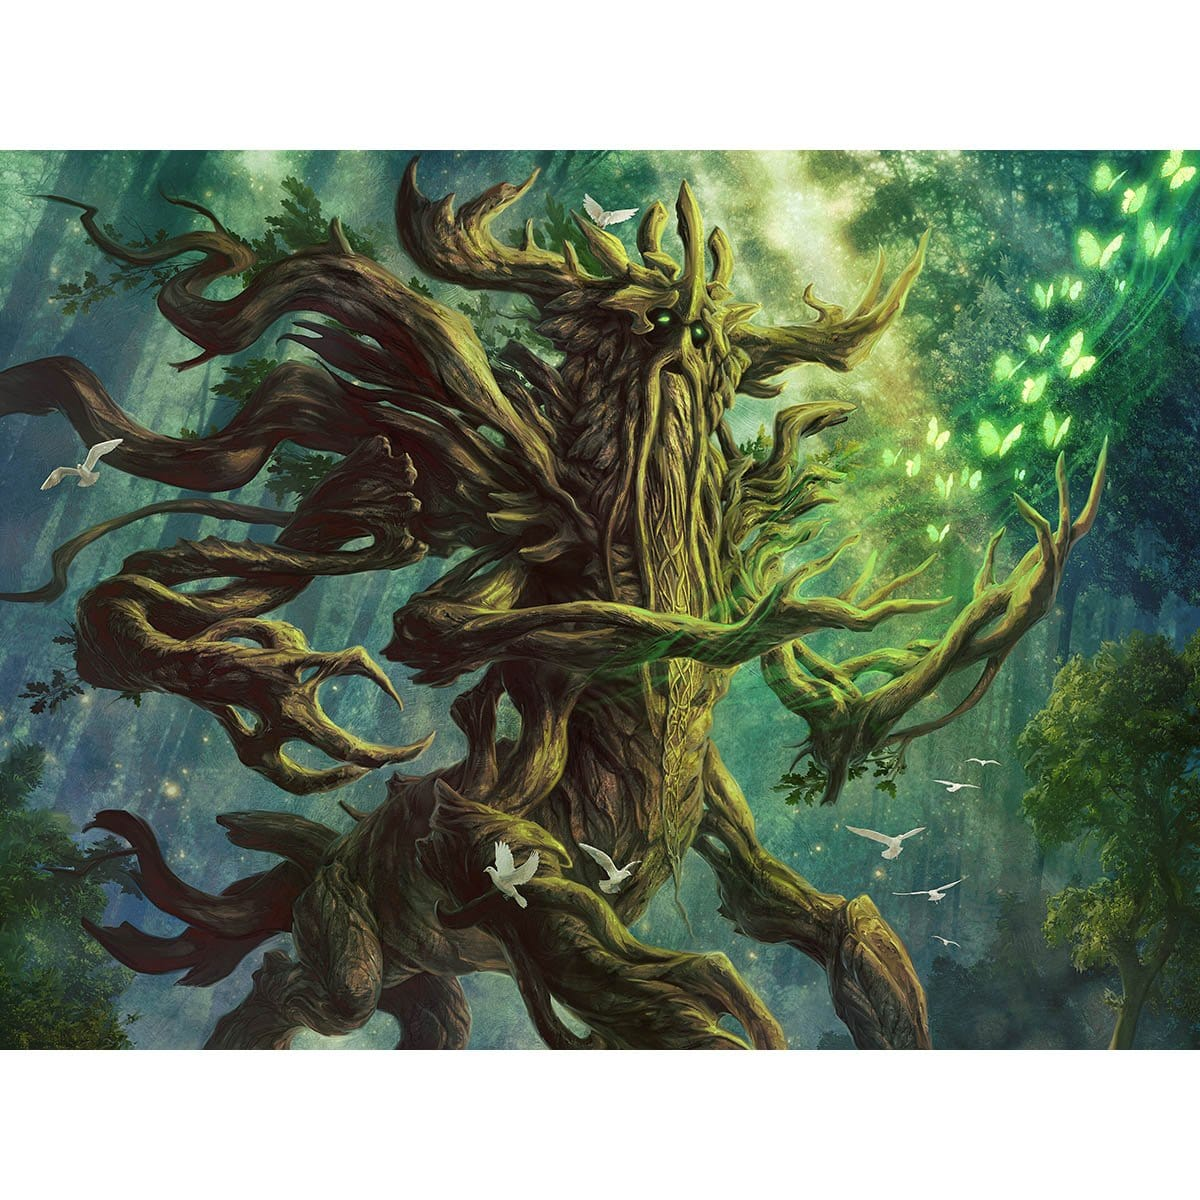 Tuinvale Treefolk Print - Print - Original Magic Art - Accessories for Magic the Gathering and other card games